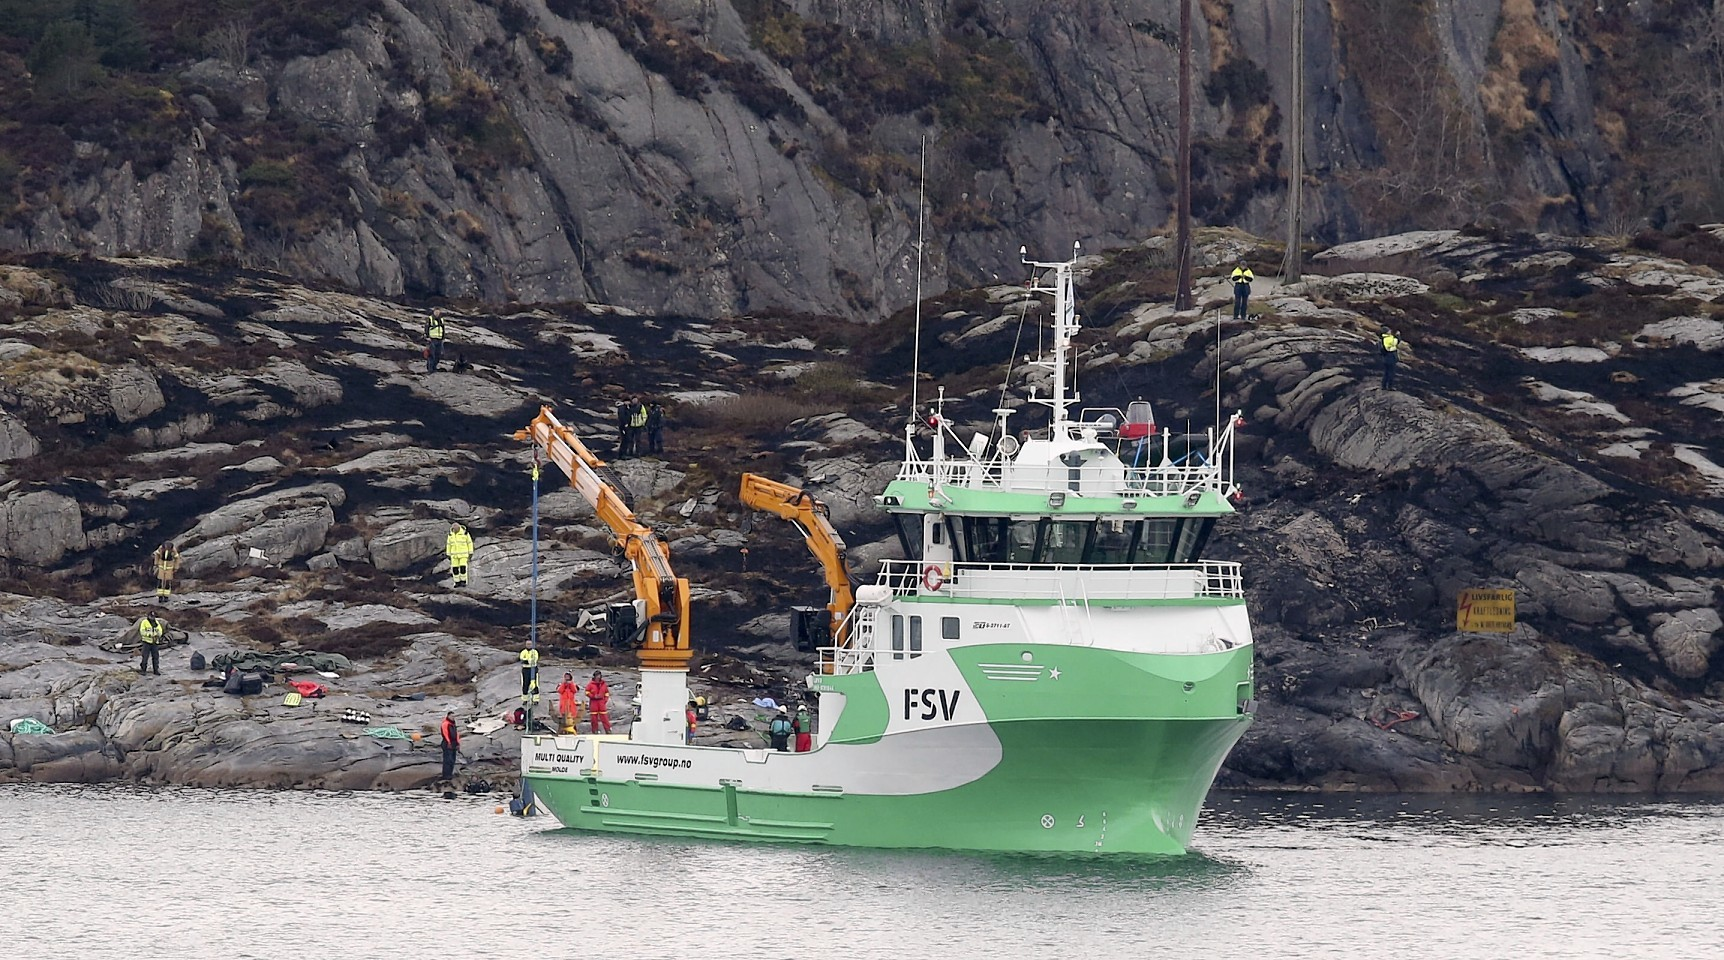 A recovery vessel lifts parts of the crashed helicopter